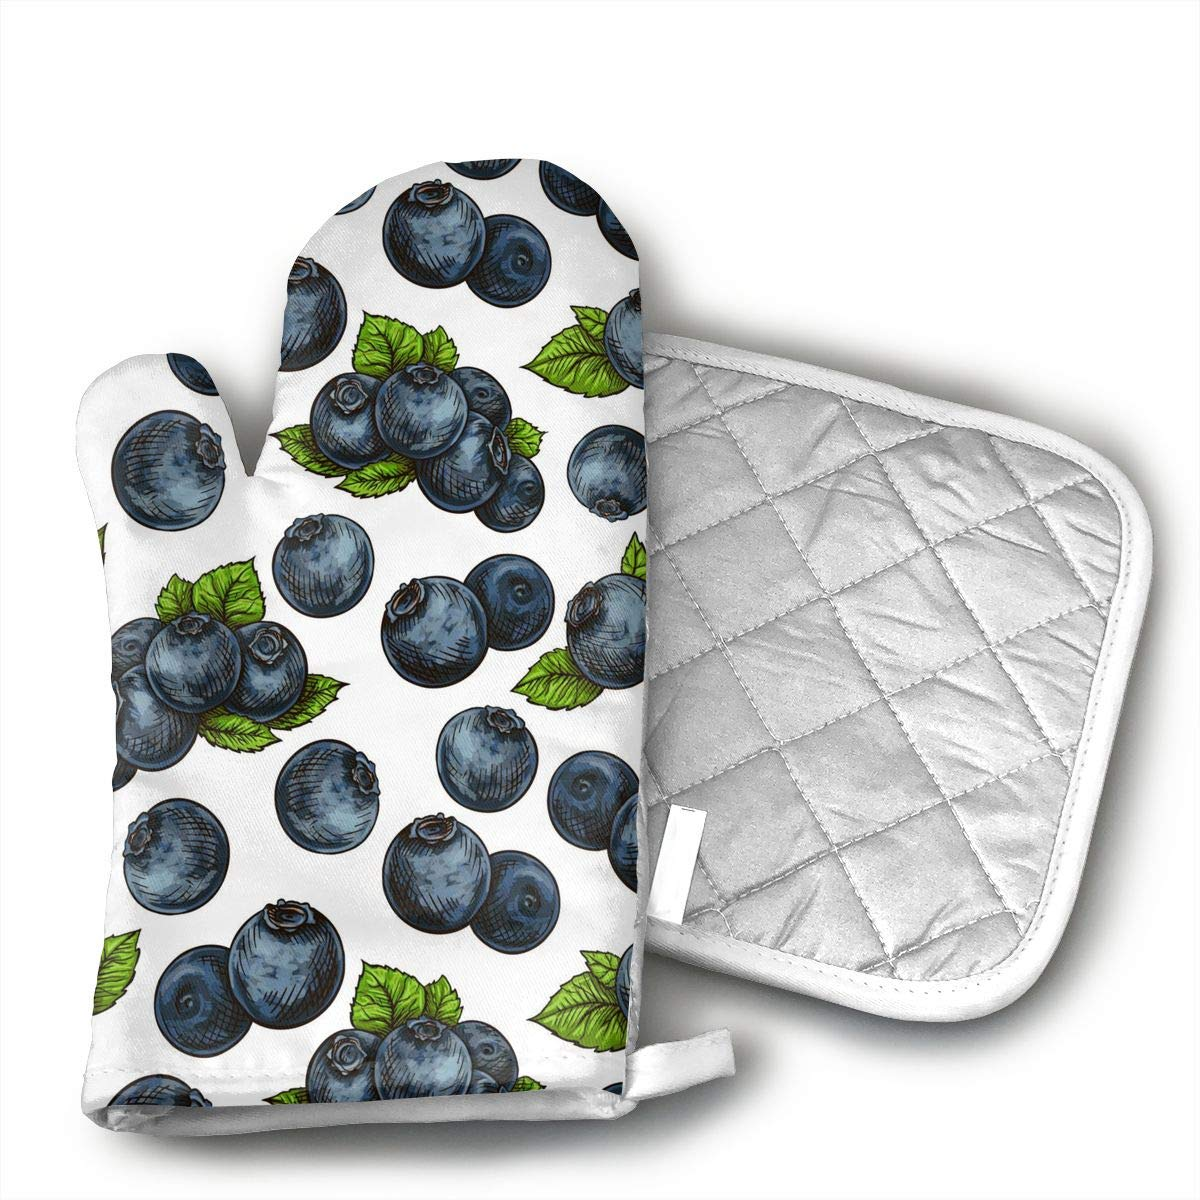 HAIQLK Blueberry Pattern Oven Mitts with Quilted Cotton Lining - Professional Heat Resistant Potholder Kitchen Gloves